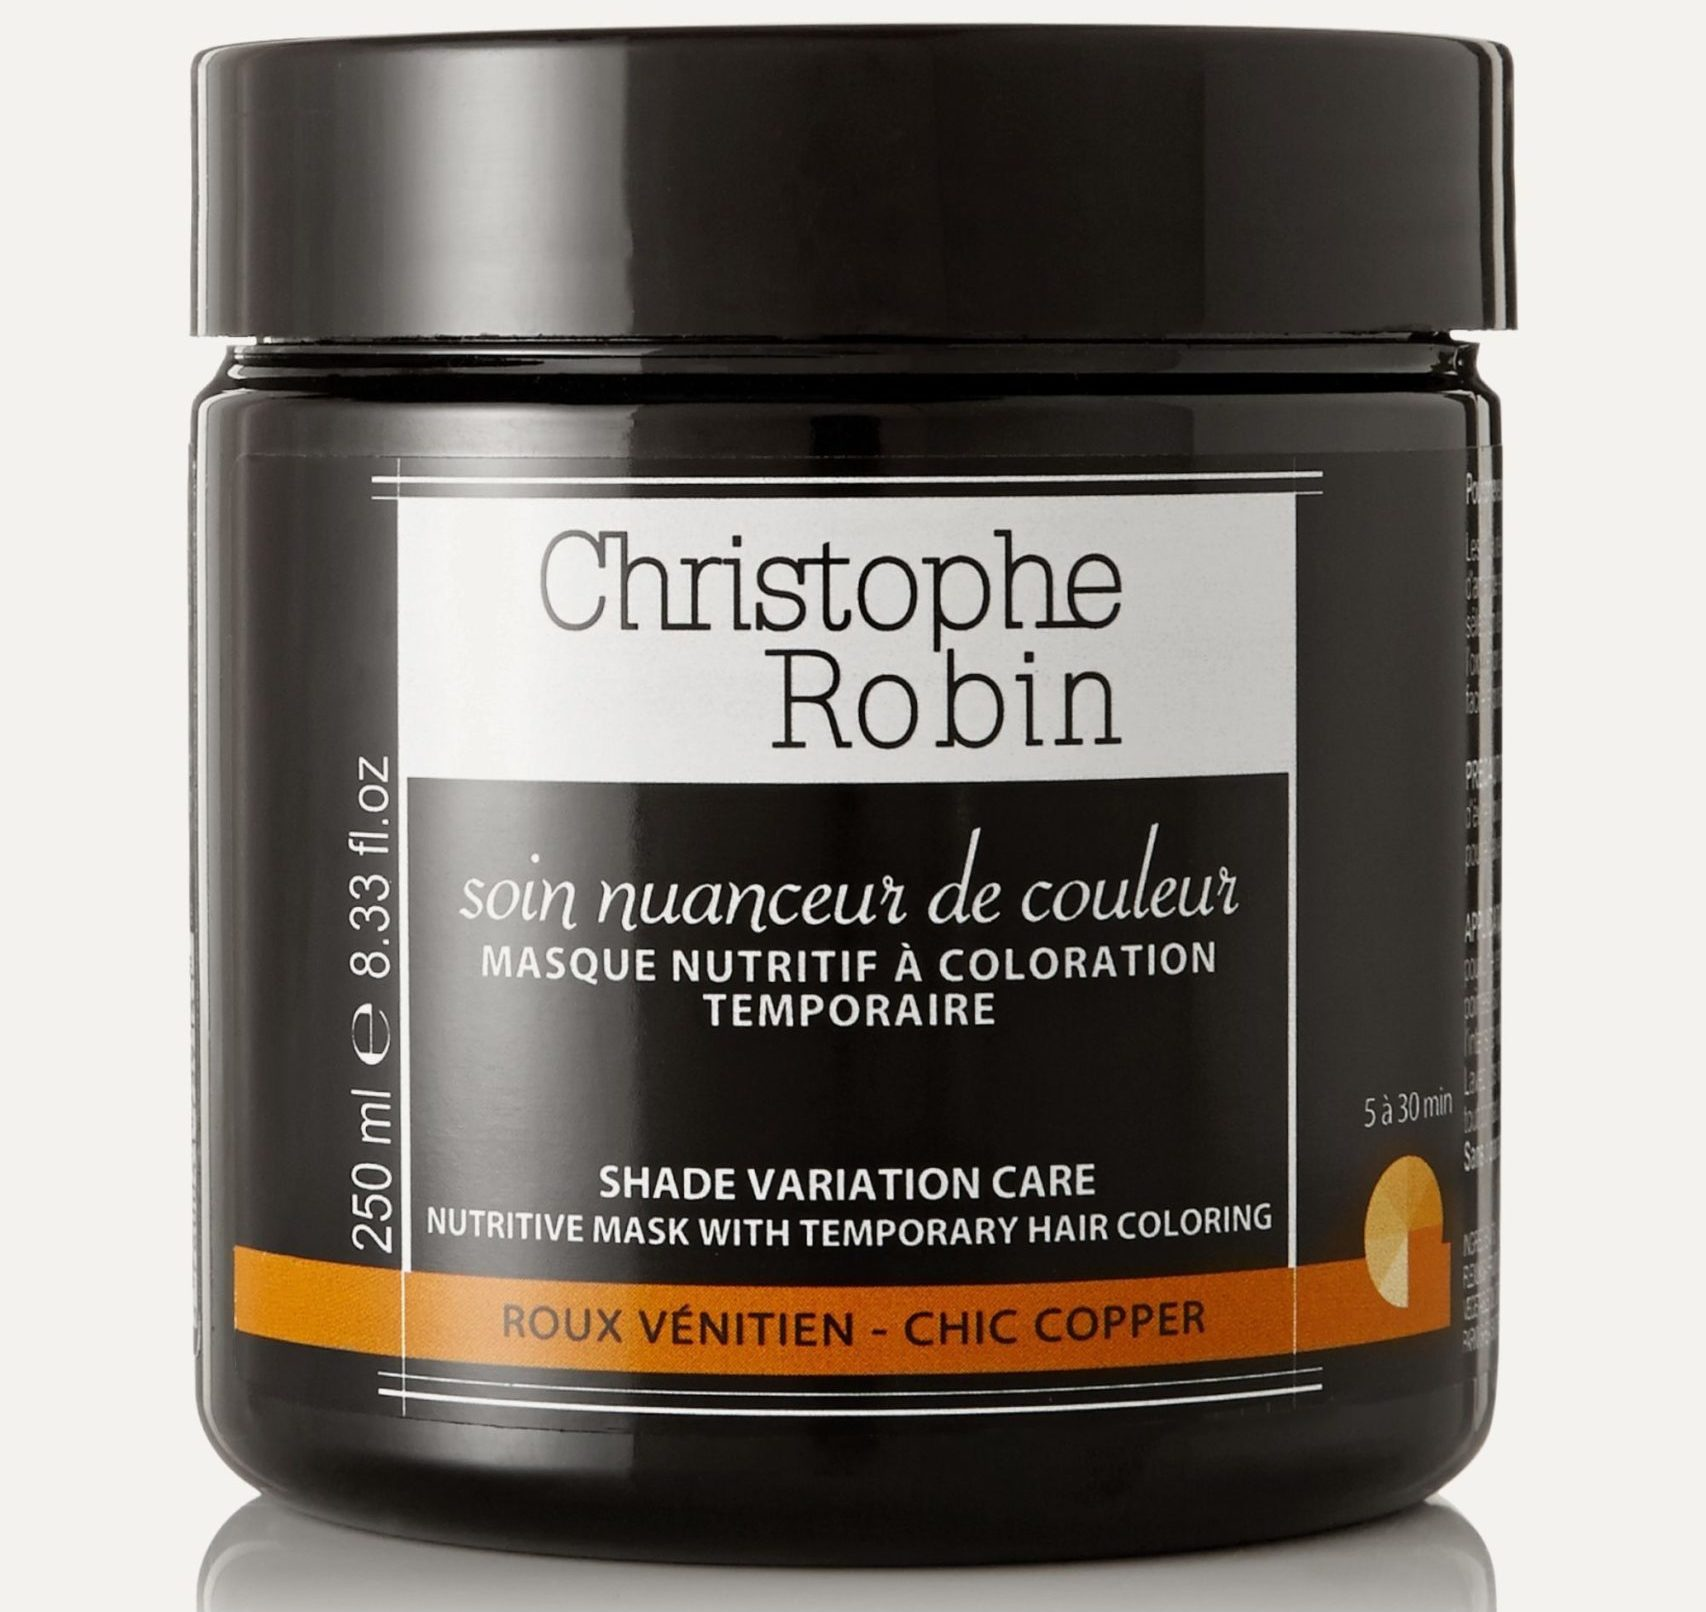 Christophe Robin Shade Variation Care - Chic Copper